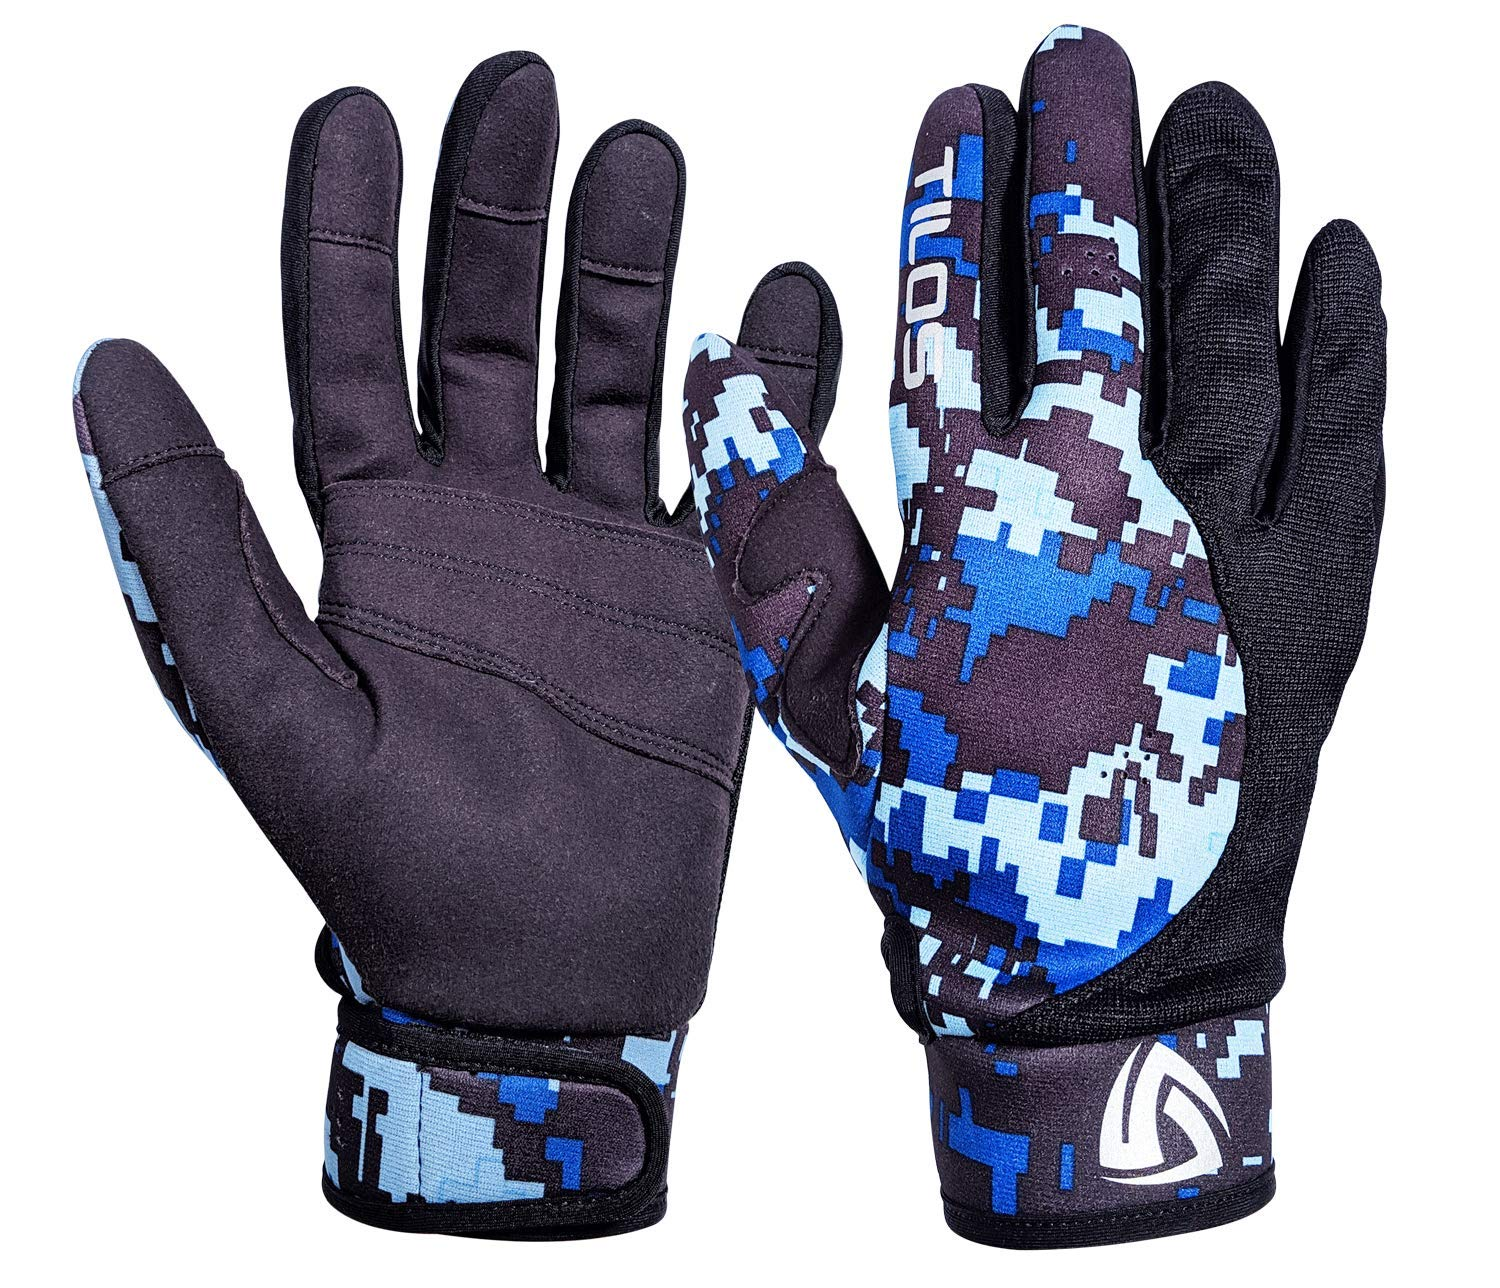 Tilos 1.5mm Reef Gloves